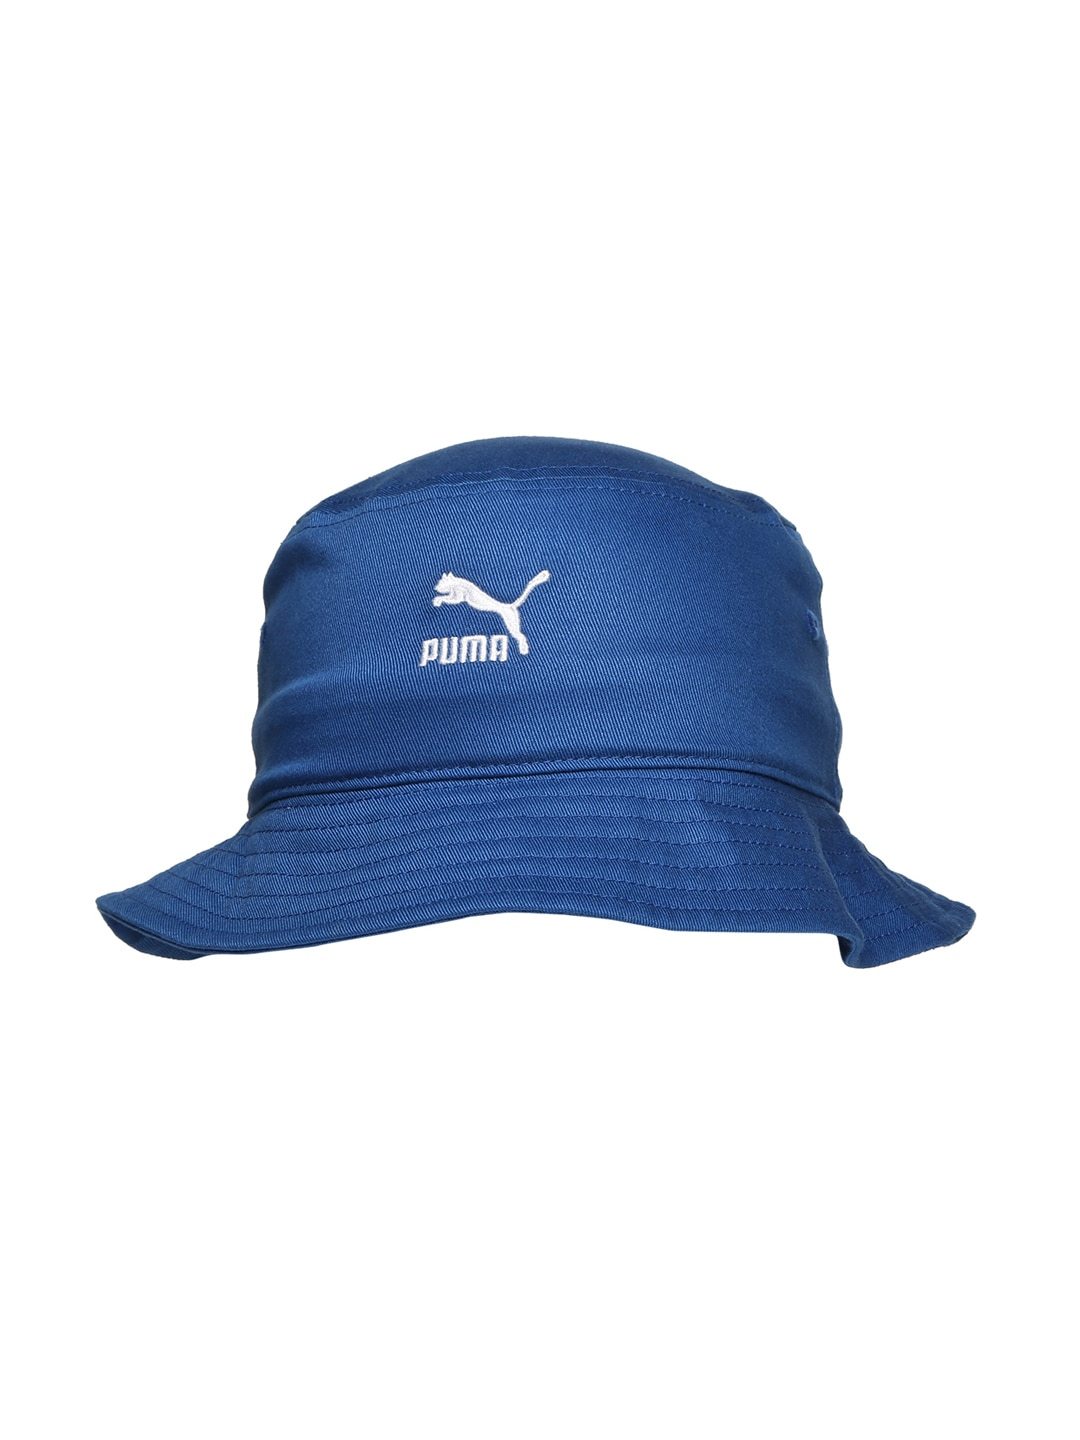 d9d8a5d5e30 Ywc Puma Headband Hat Jackets - Buy Ywc Puma Headband Hat Jackets online in  India